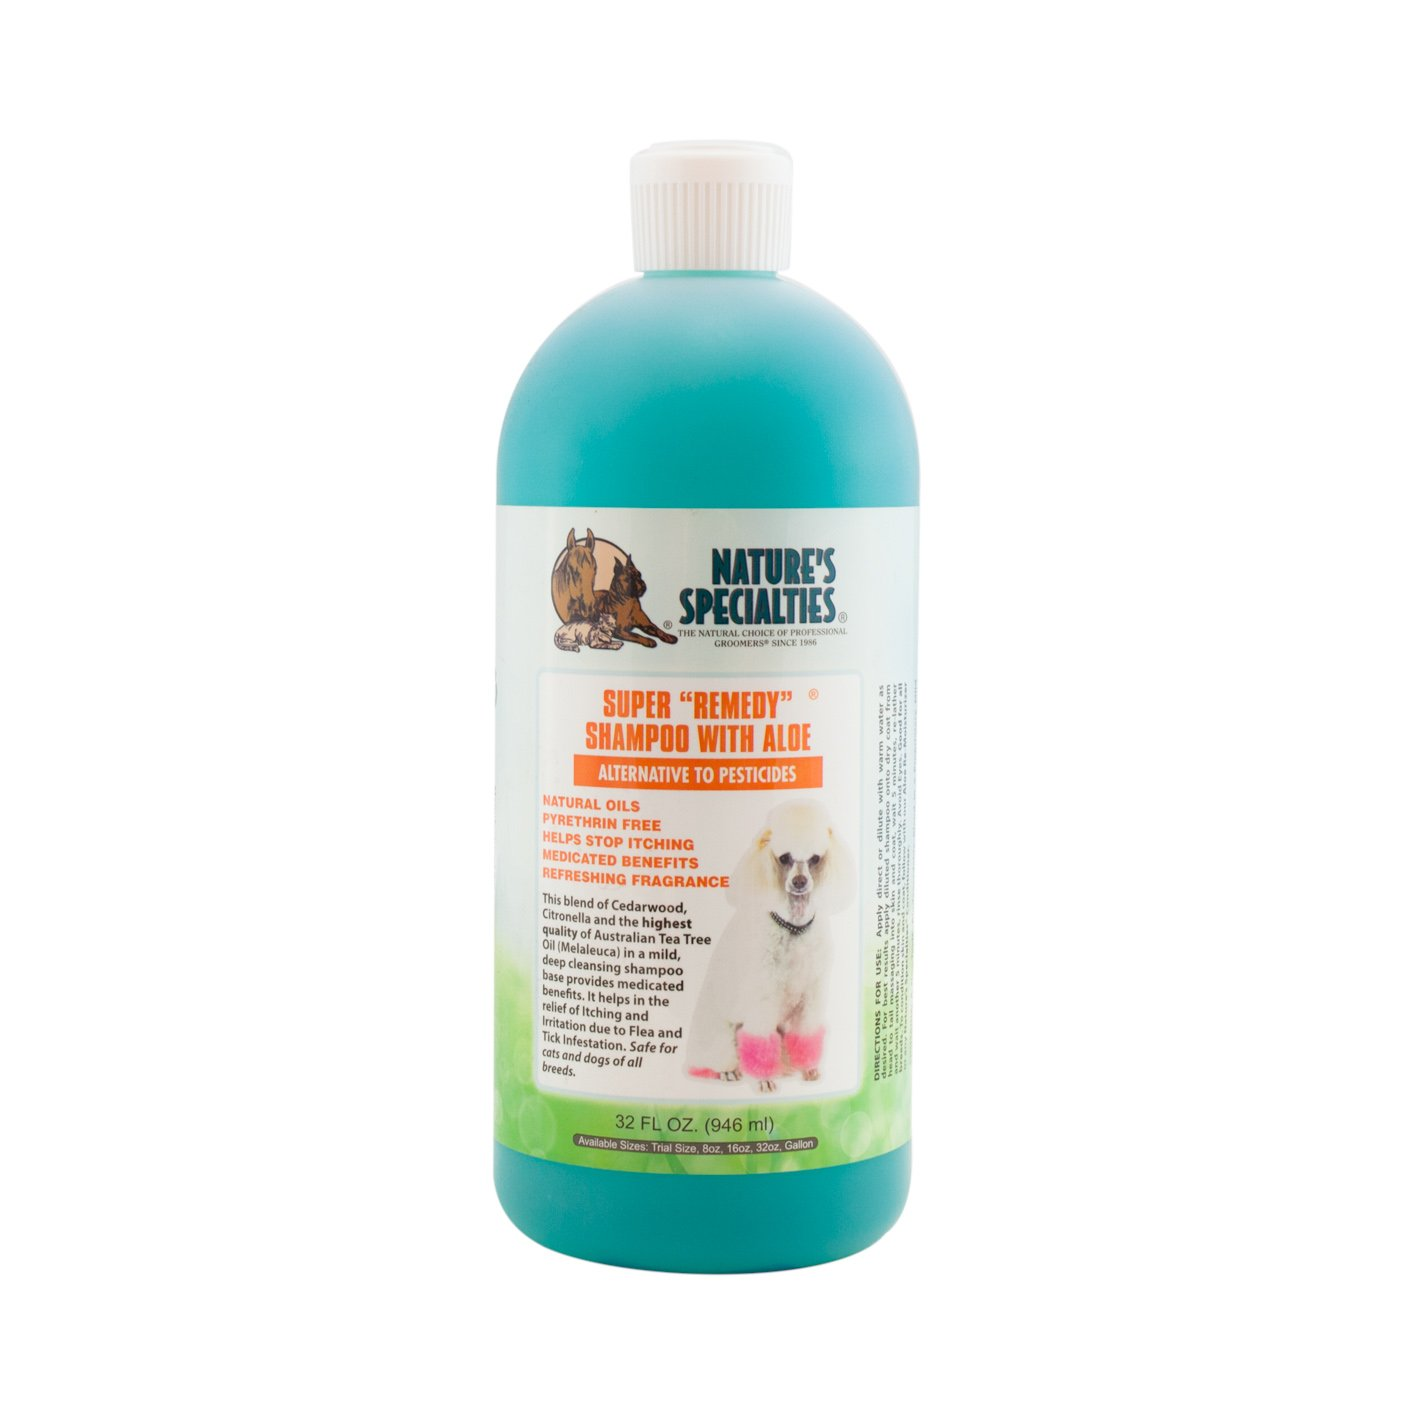 Nature's Specialties Super Remedy Pet Shampoo, 32-Ounce